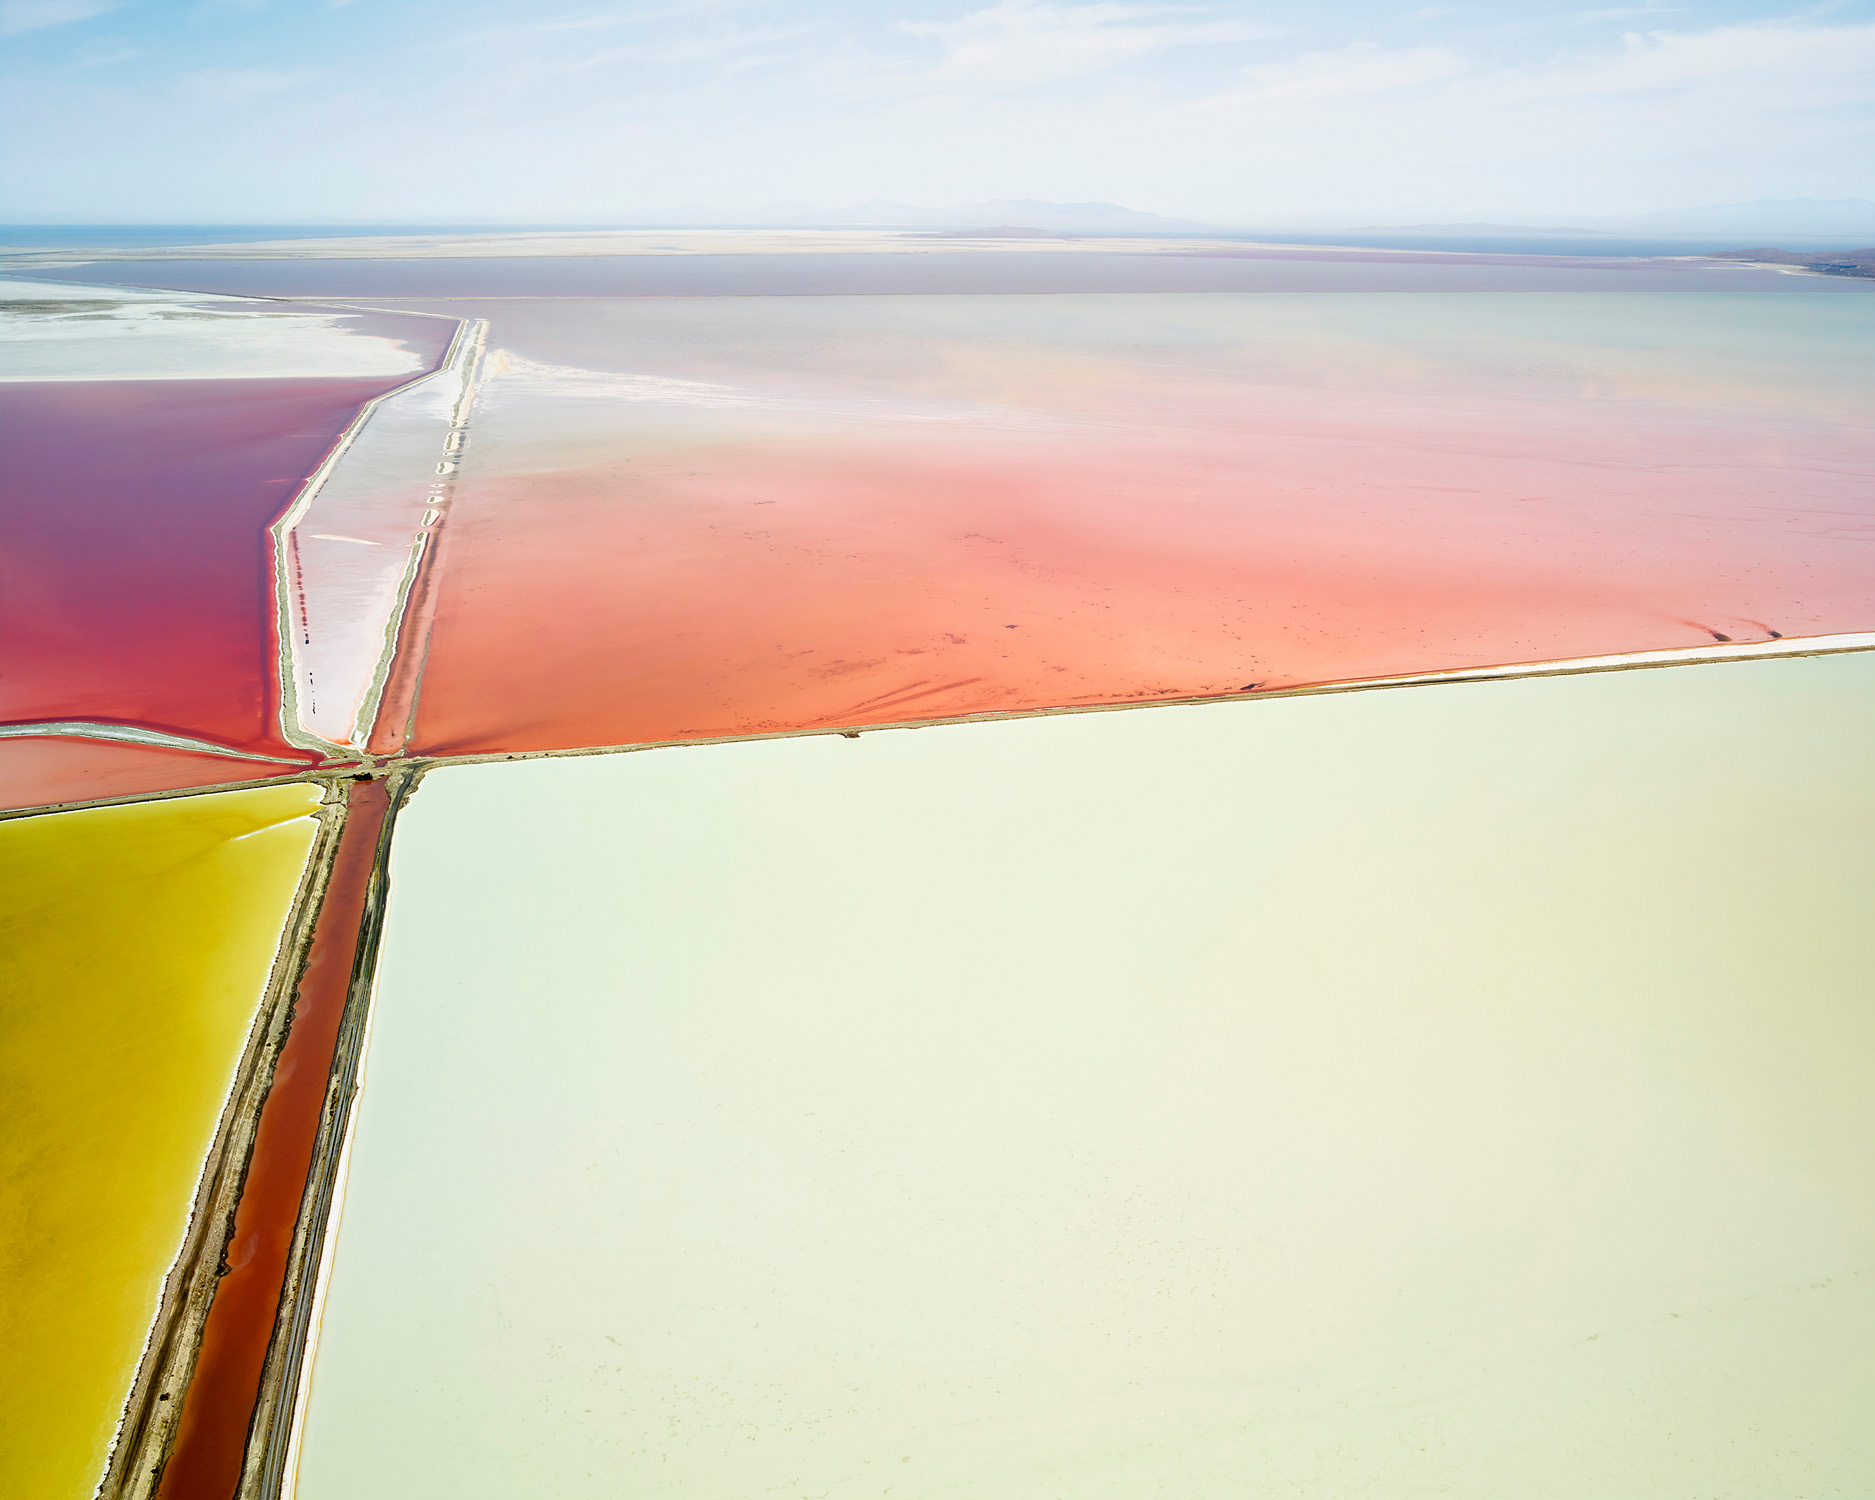 Saltern Study 11, Great Salt Lake, UT, 2015